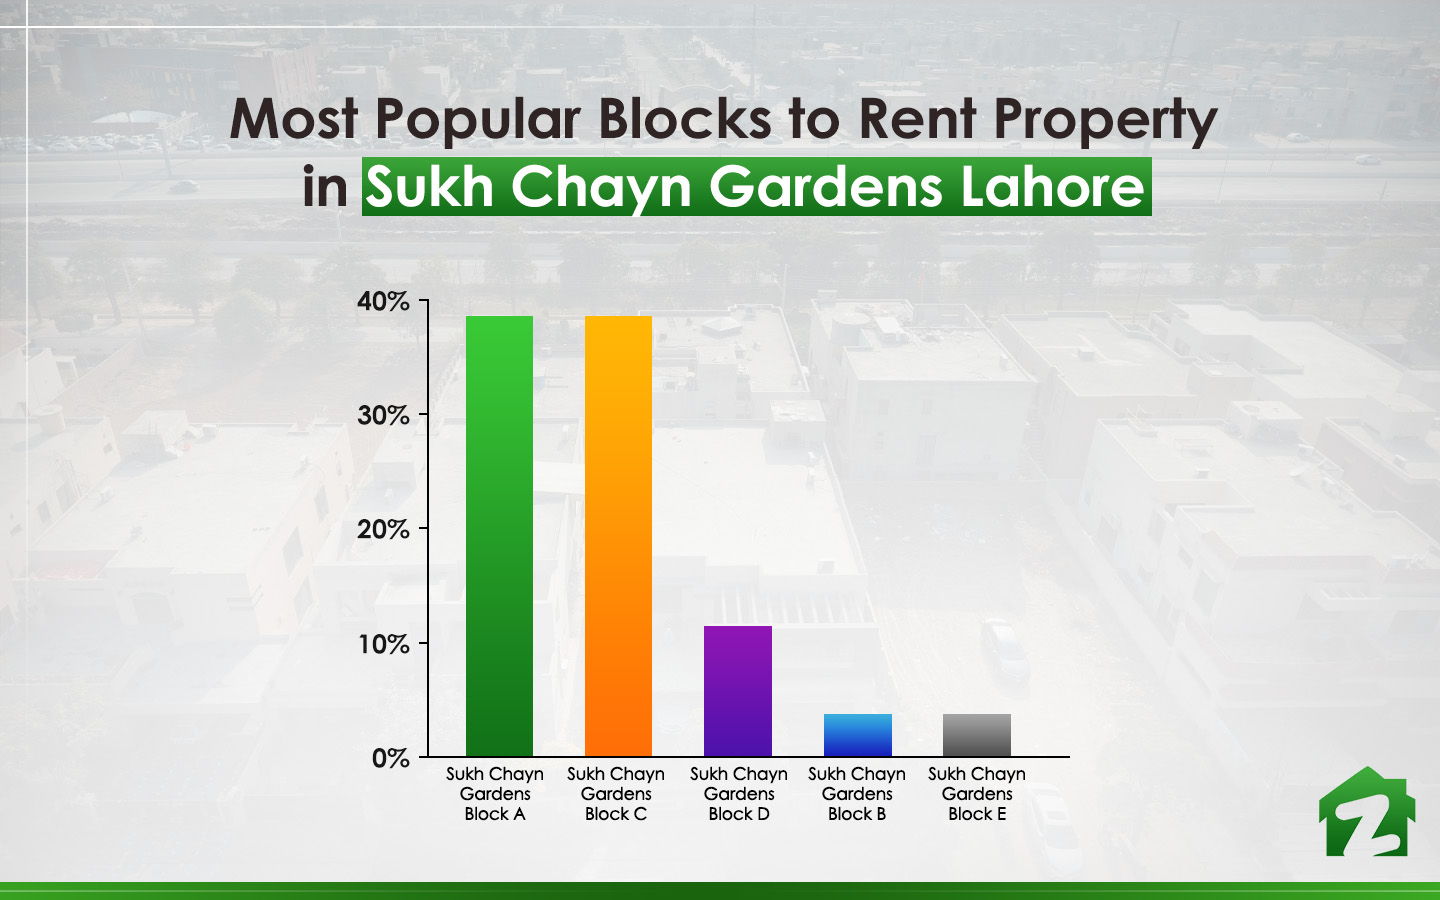 Popular Blocks to Rent Property in Sukh Chayn Gardens Lahore